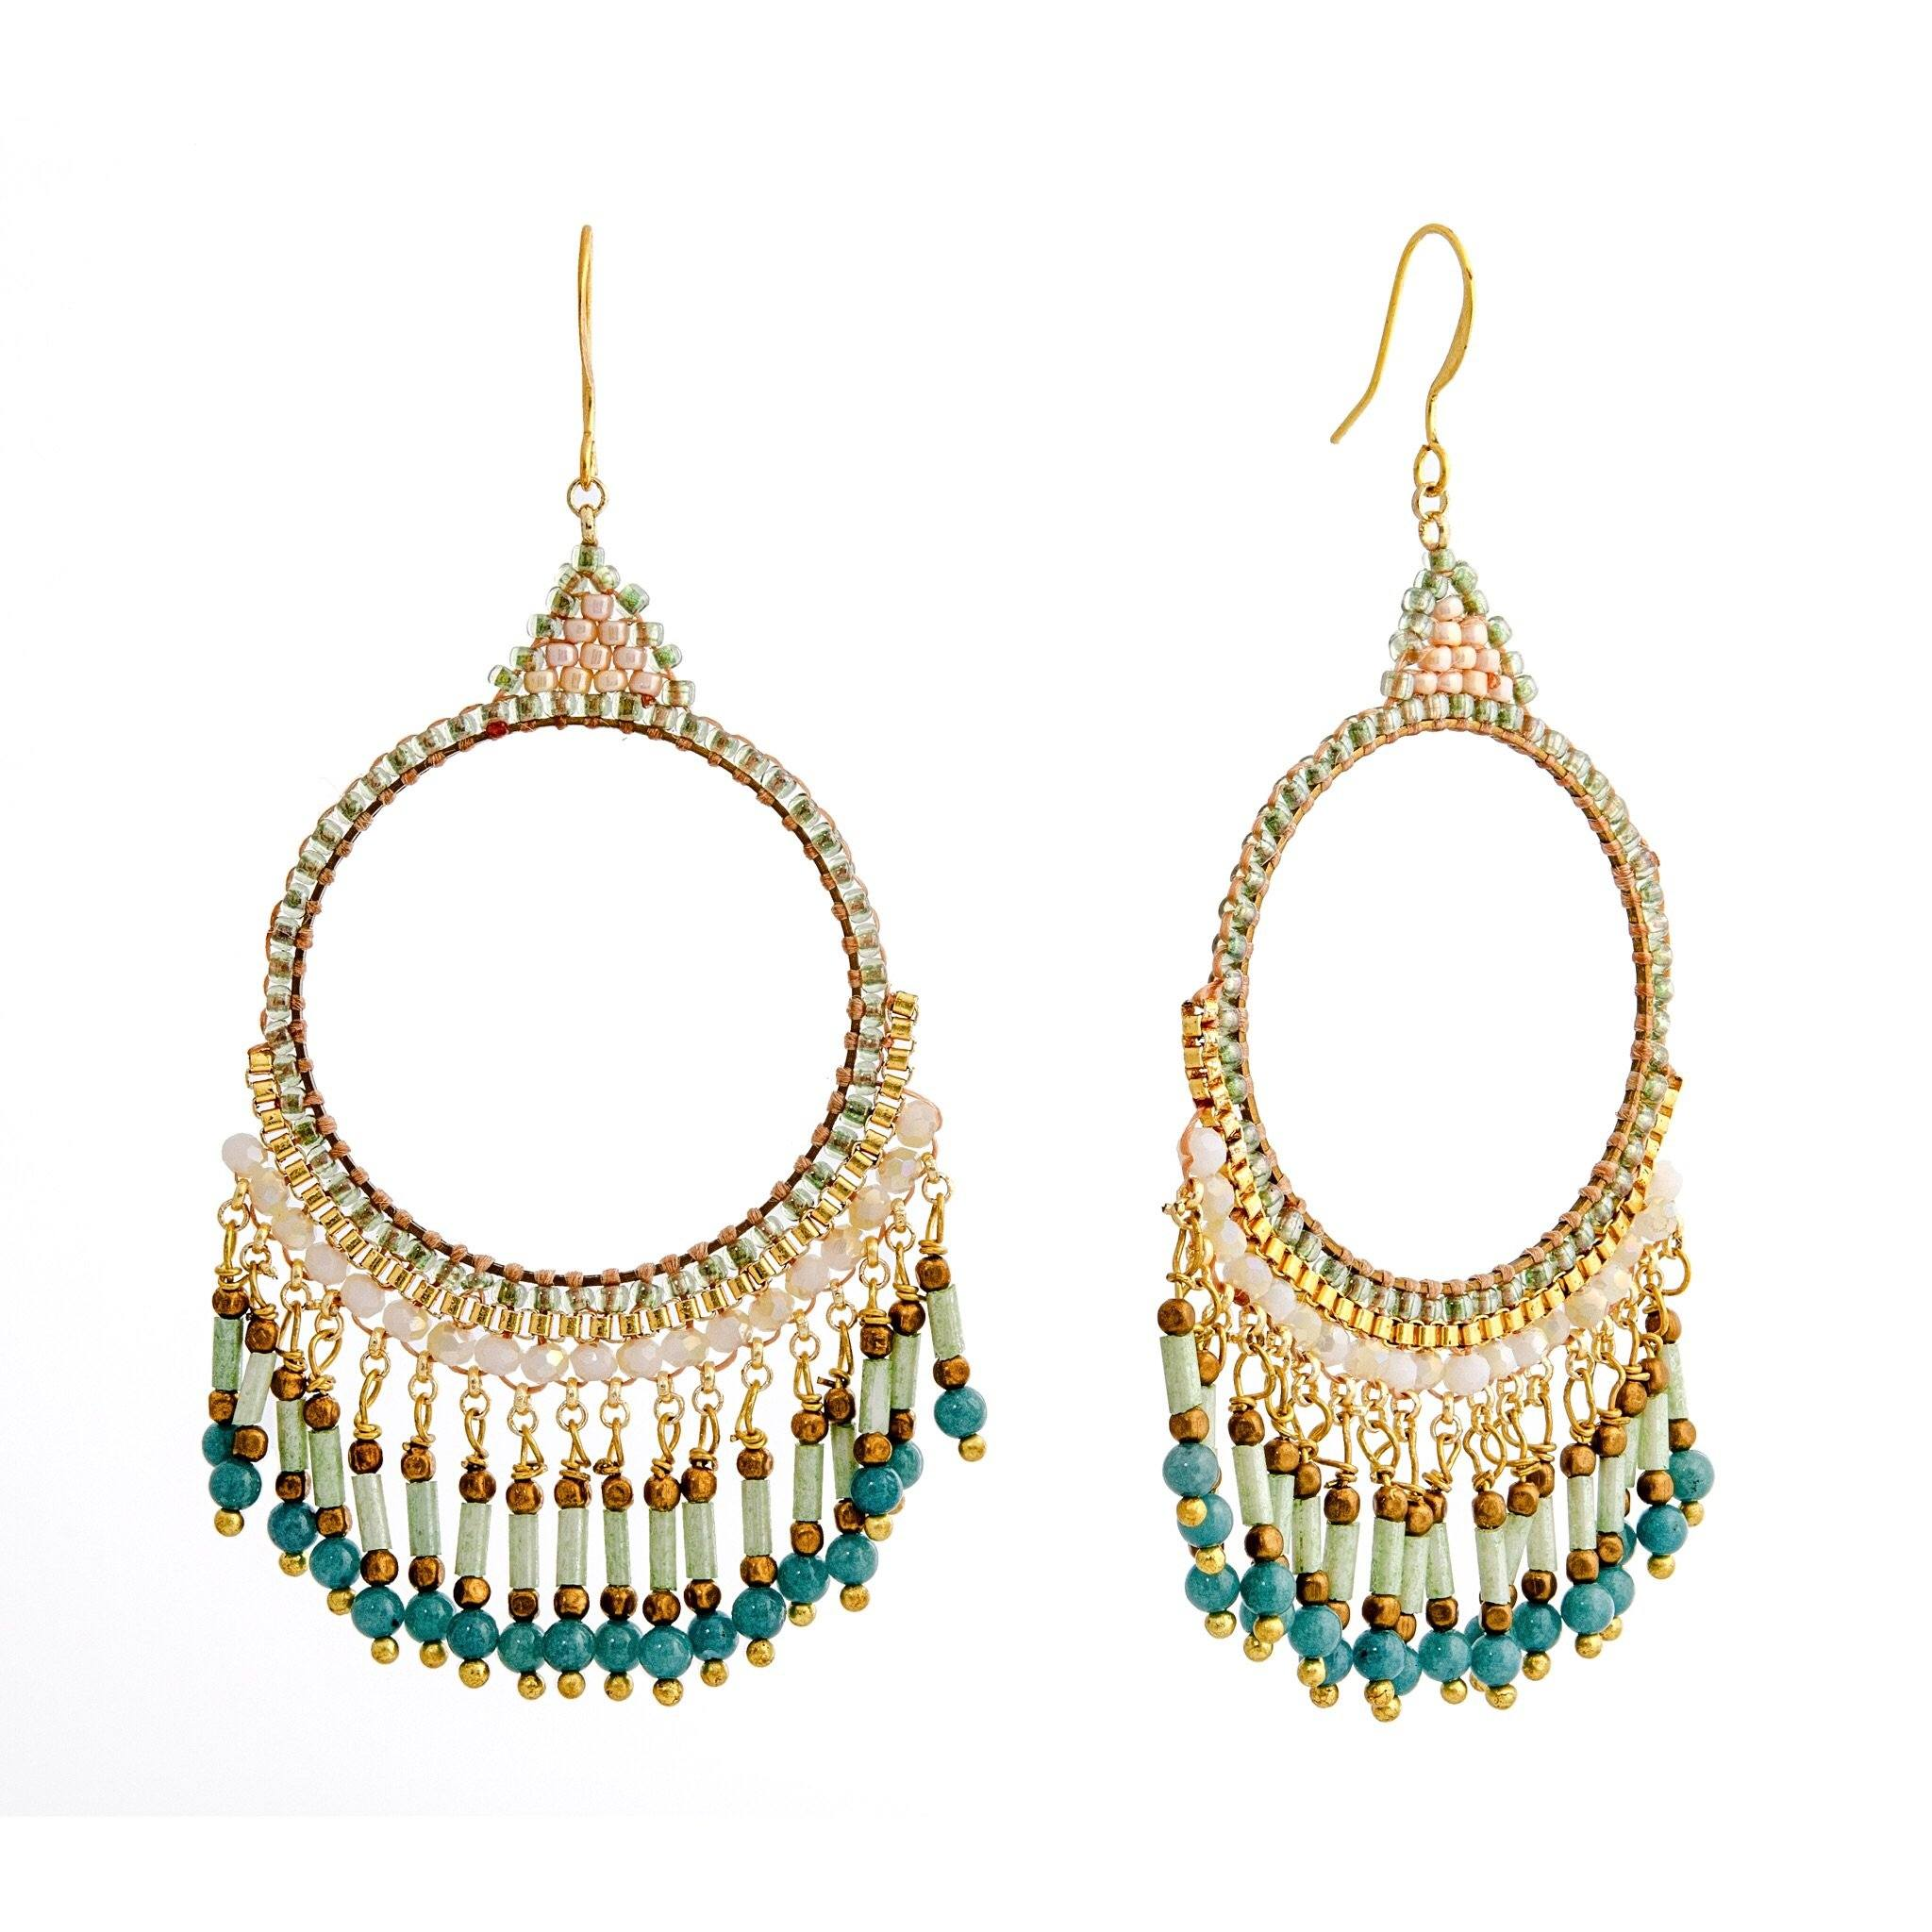 BOHEMIA aqua earrings